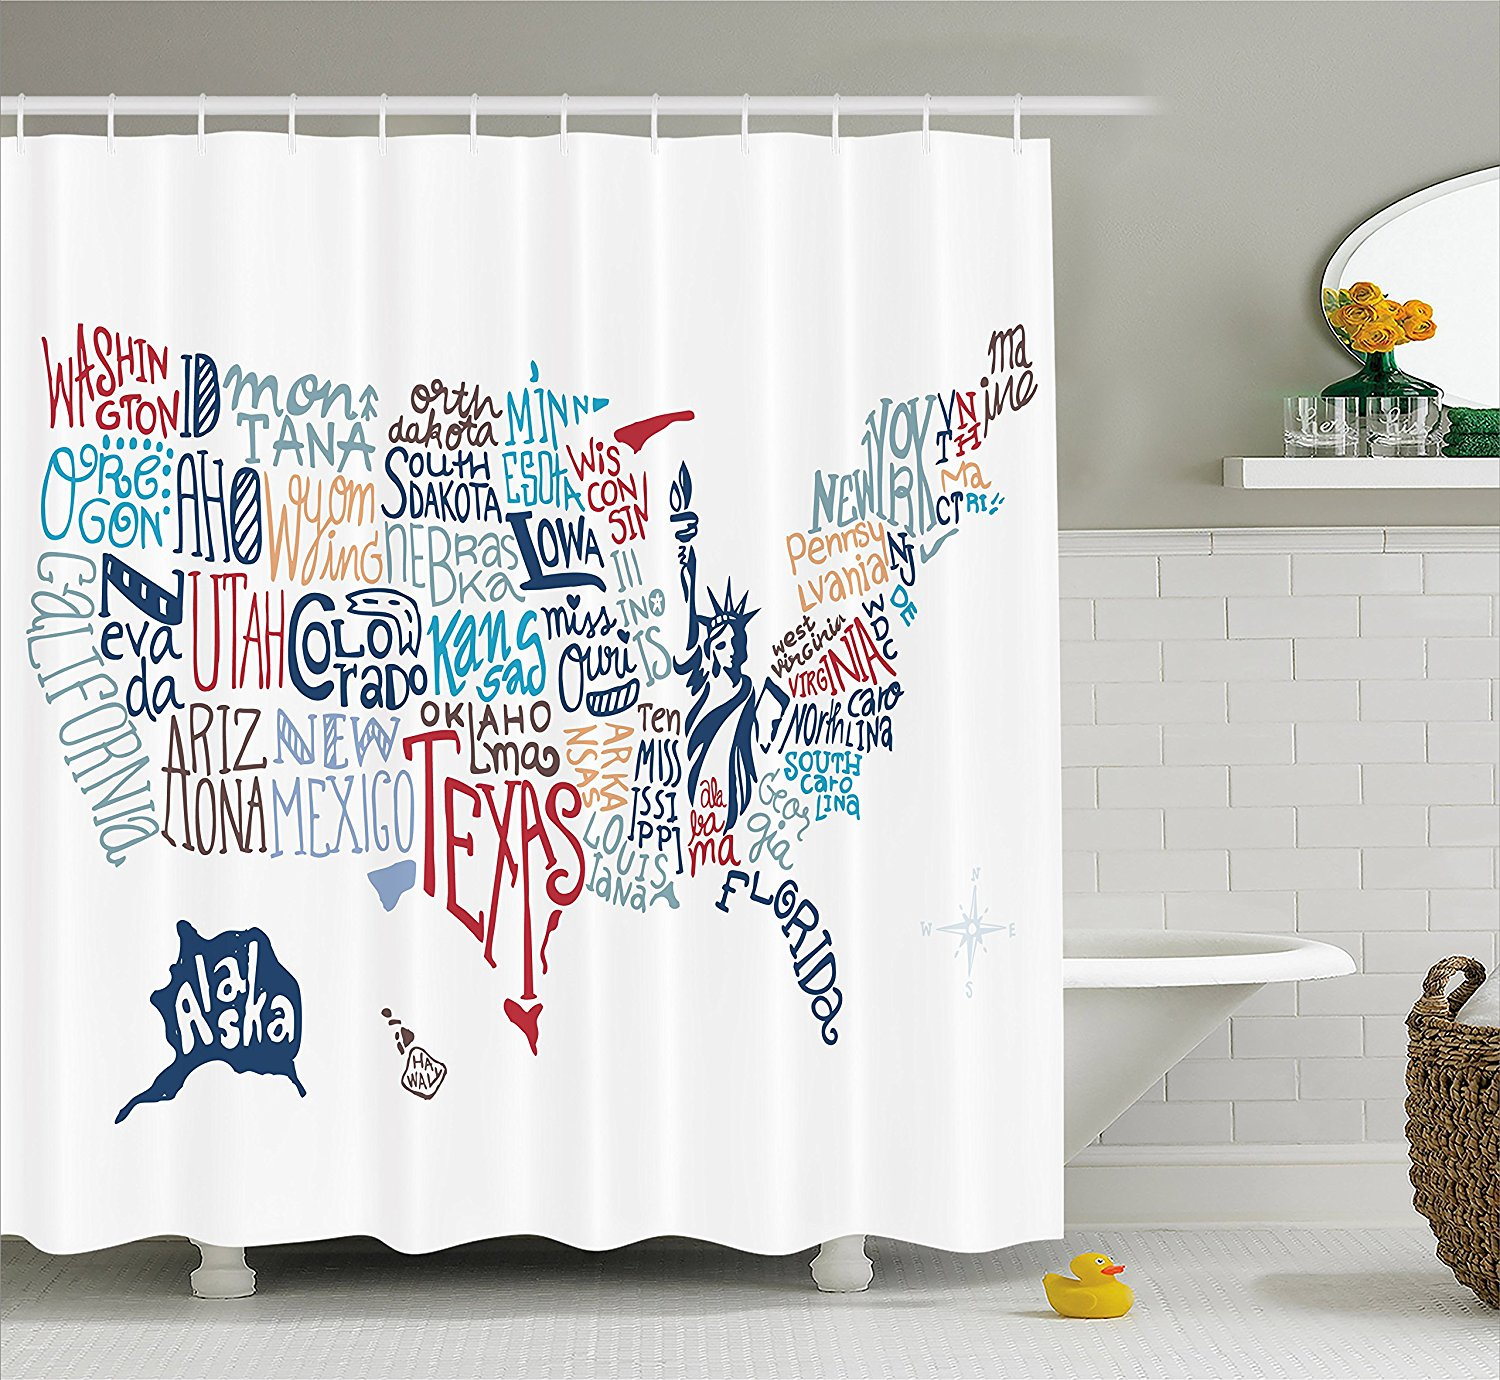 Usa Shower Curtain Us 21 17 Usa Map Shower Curtain Culture Tourist Names Of American Town In Colorful Artful Typography City Design Decor Set With Hooks In Shower